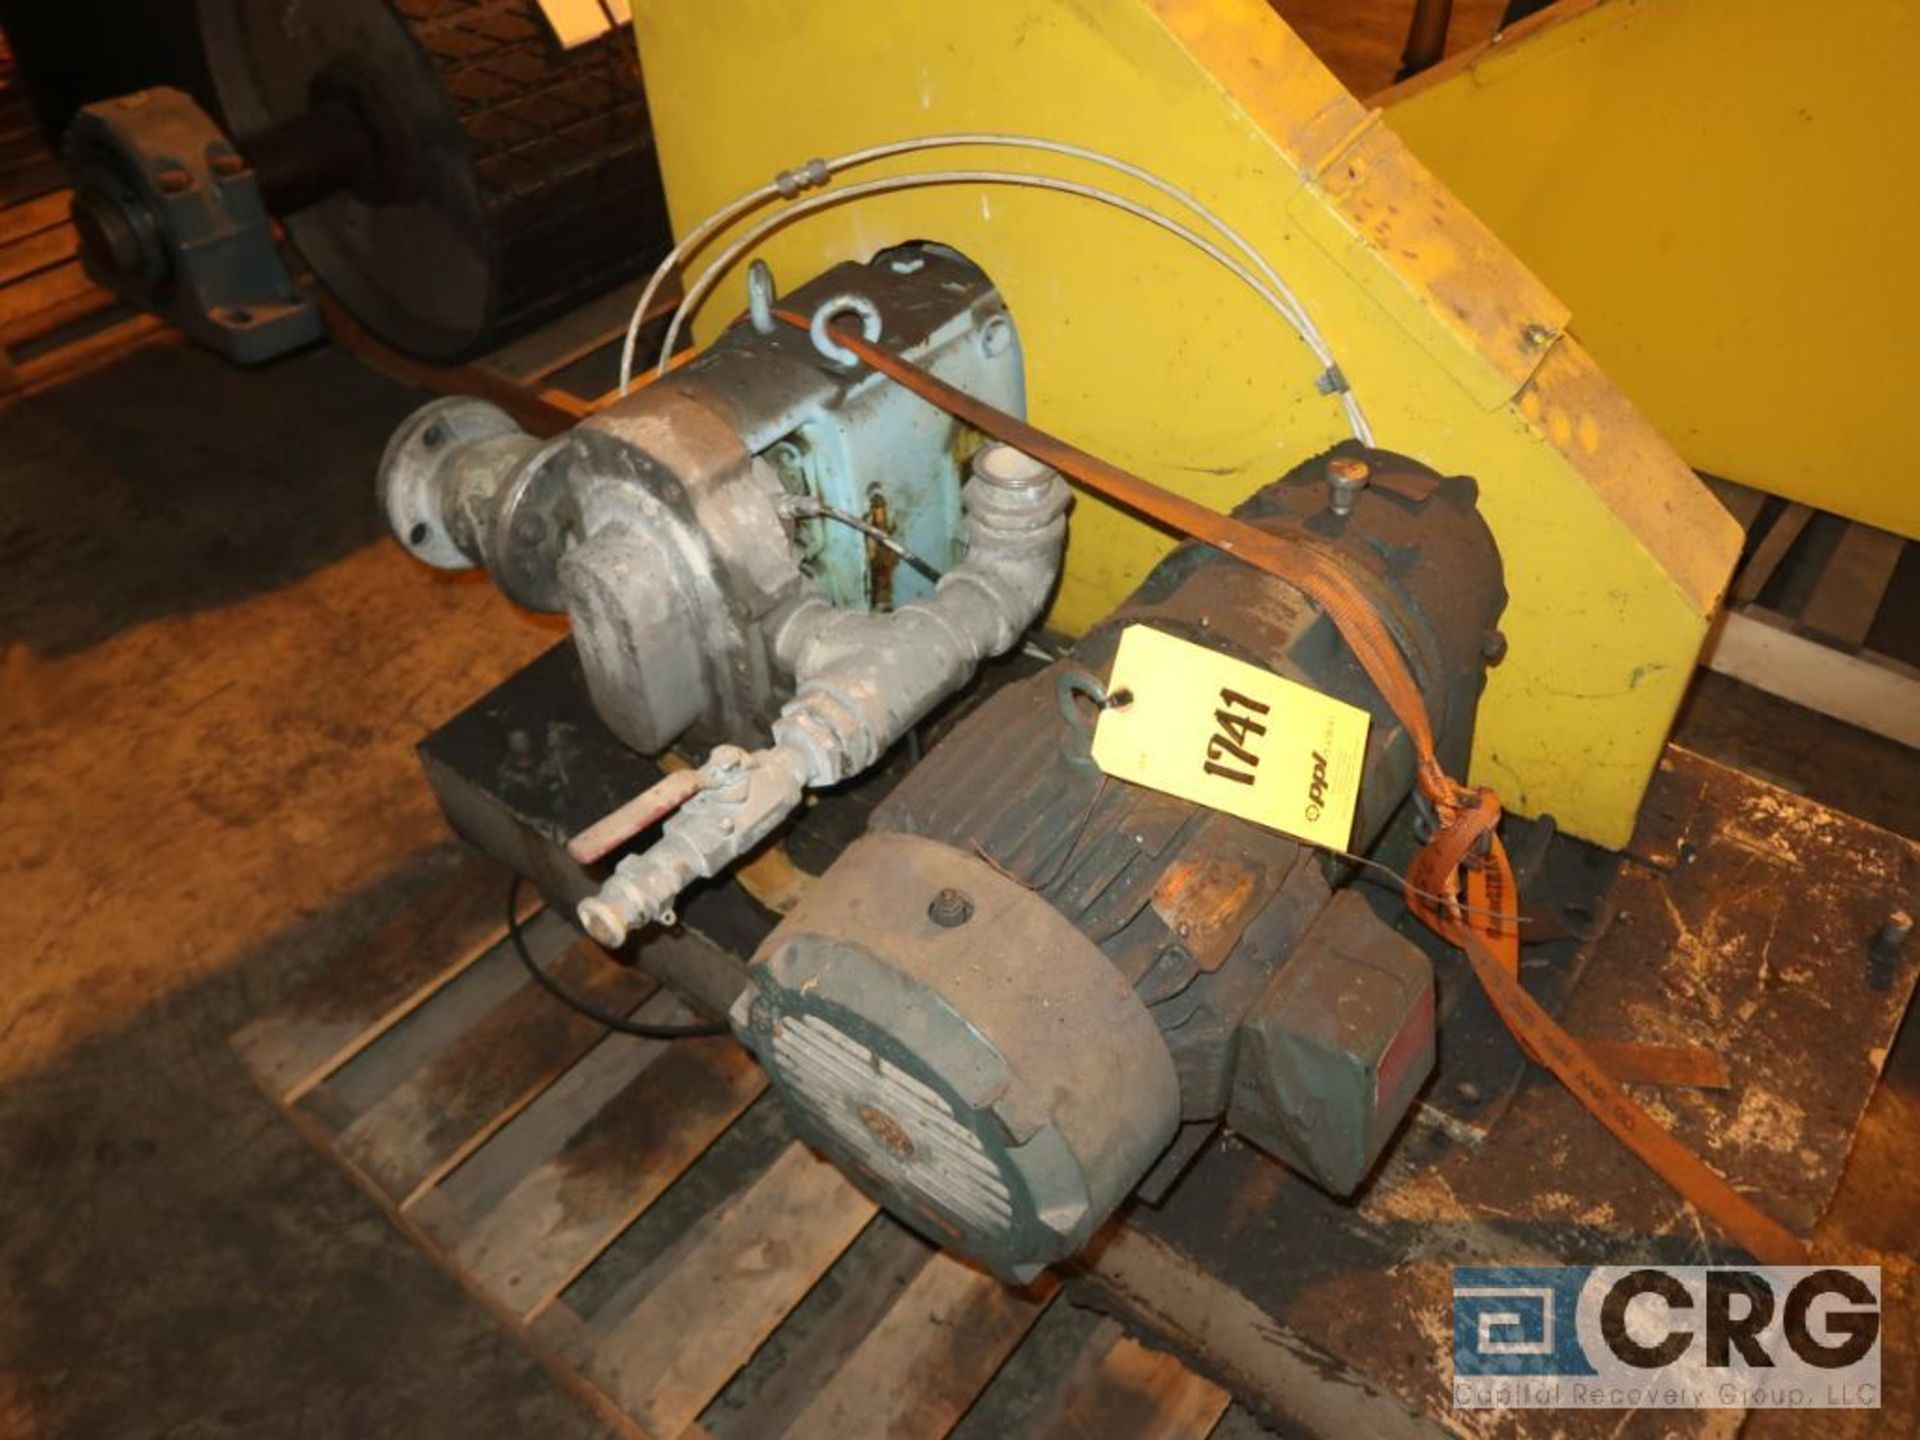 Waukesha 5050 positive displacement pump with 5 HP motor (Next Bay Cage Area) - Image 2 of 2